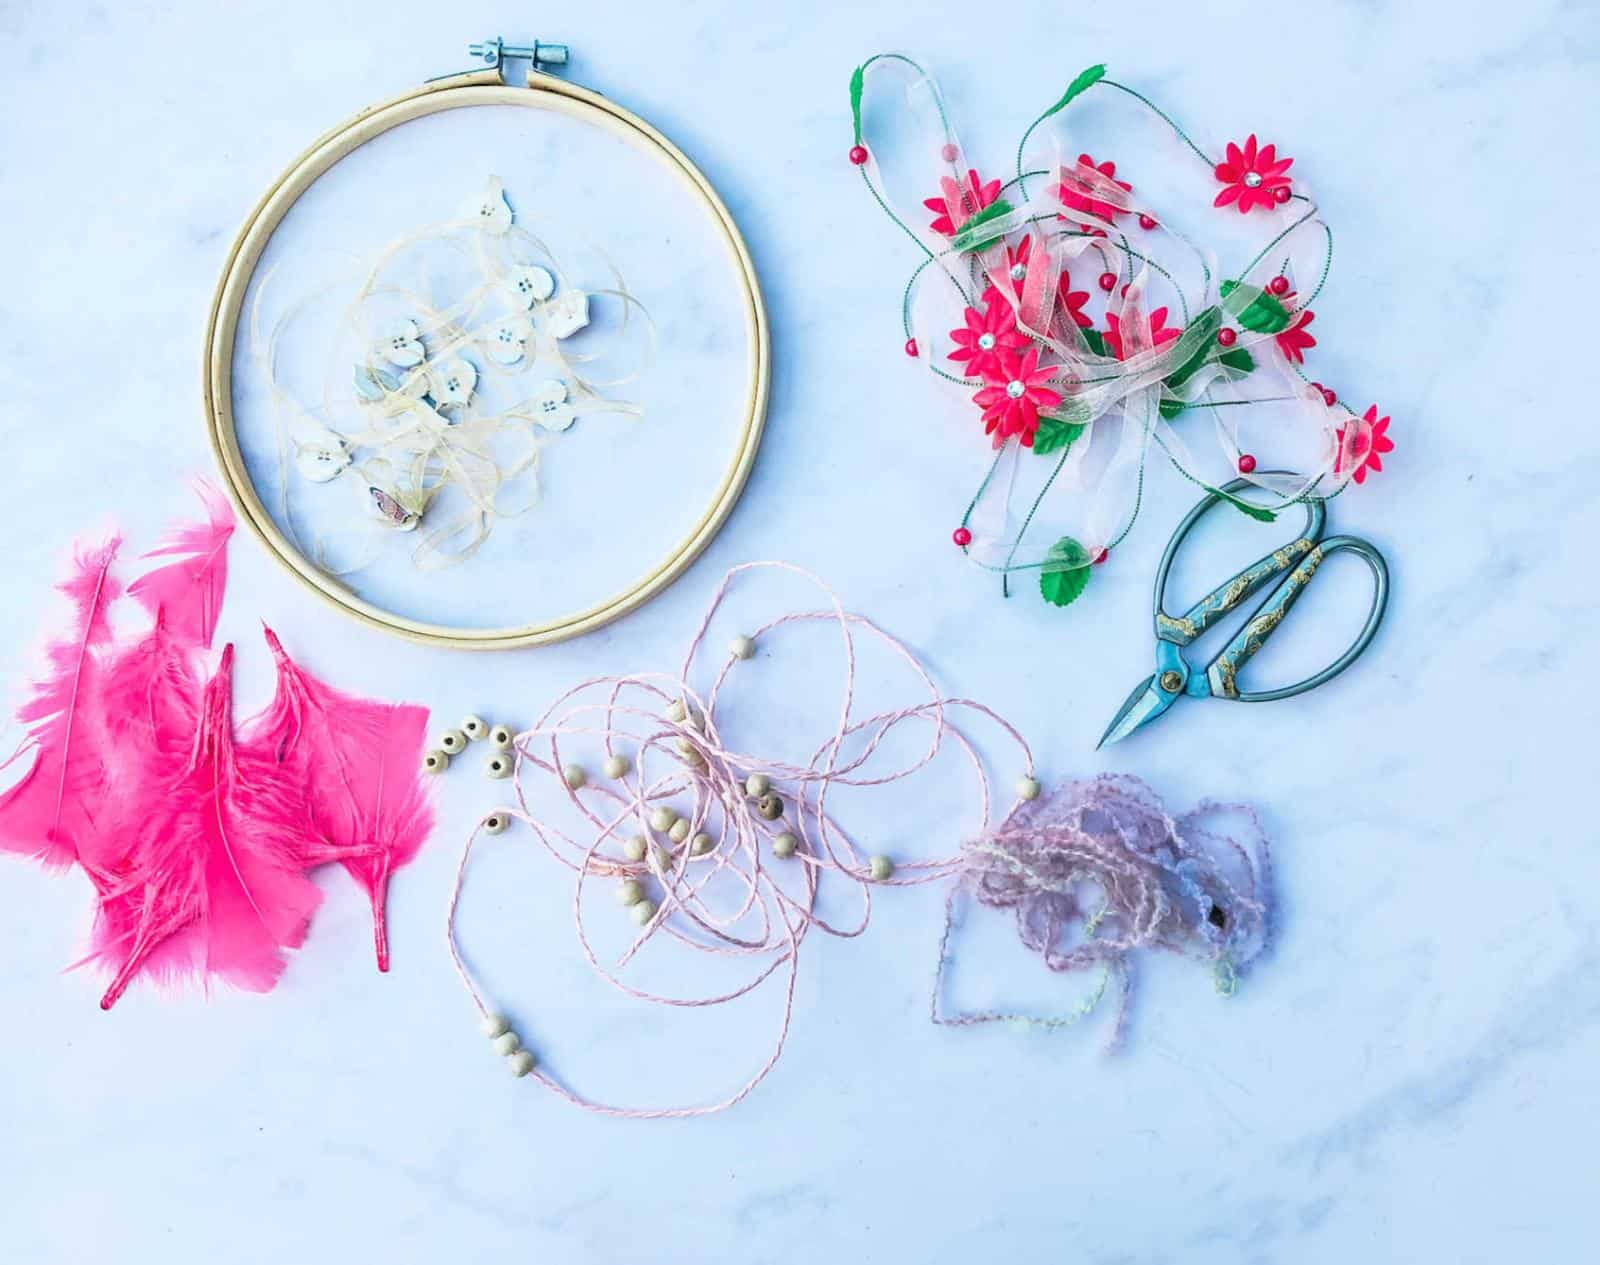 What you need to make a dreamcatcher